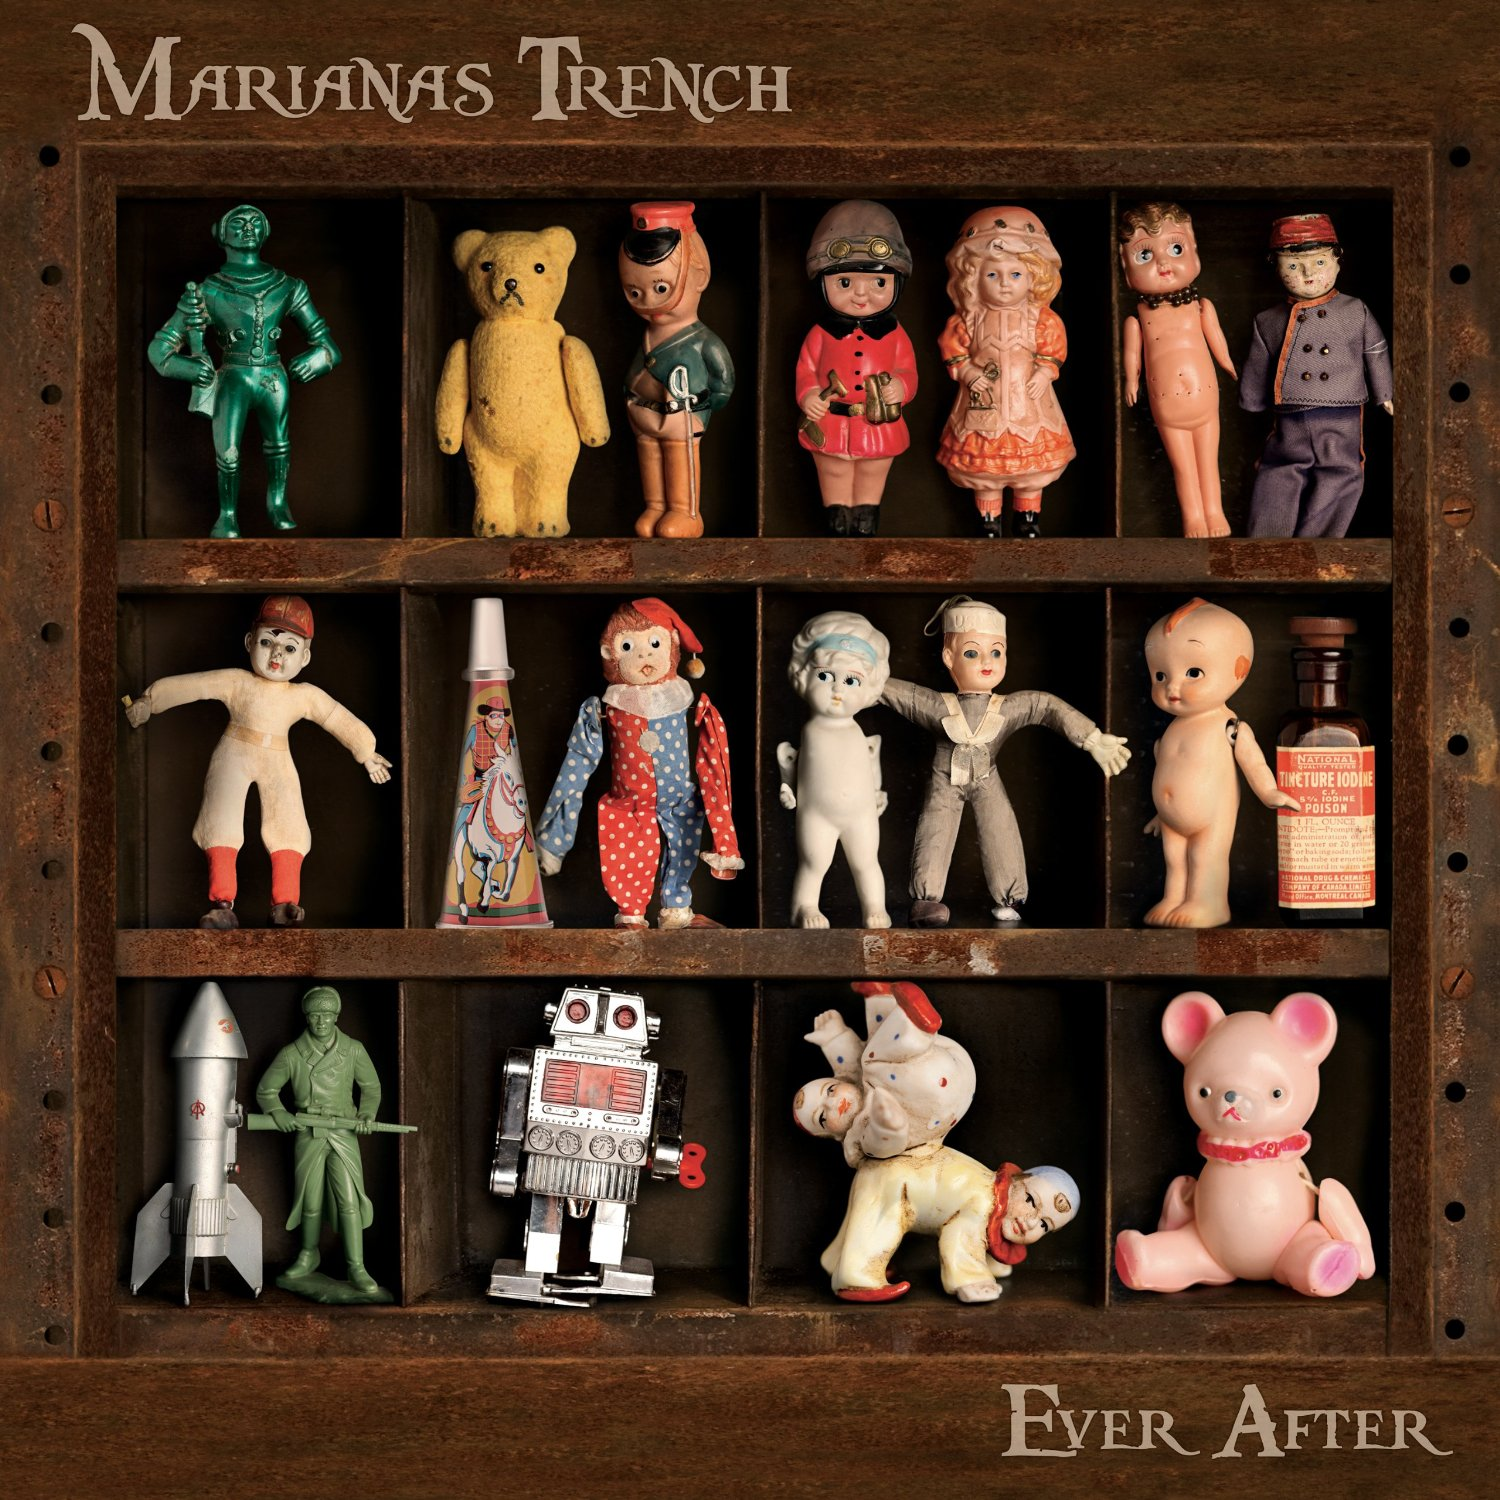 http://www.amazon.com/Ever-After-Marianas-Trench/dp/B005ZX4DMS